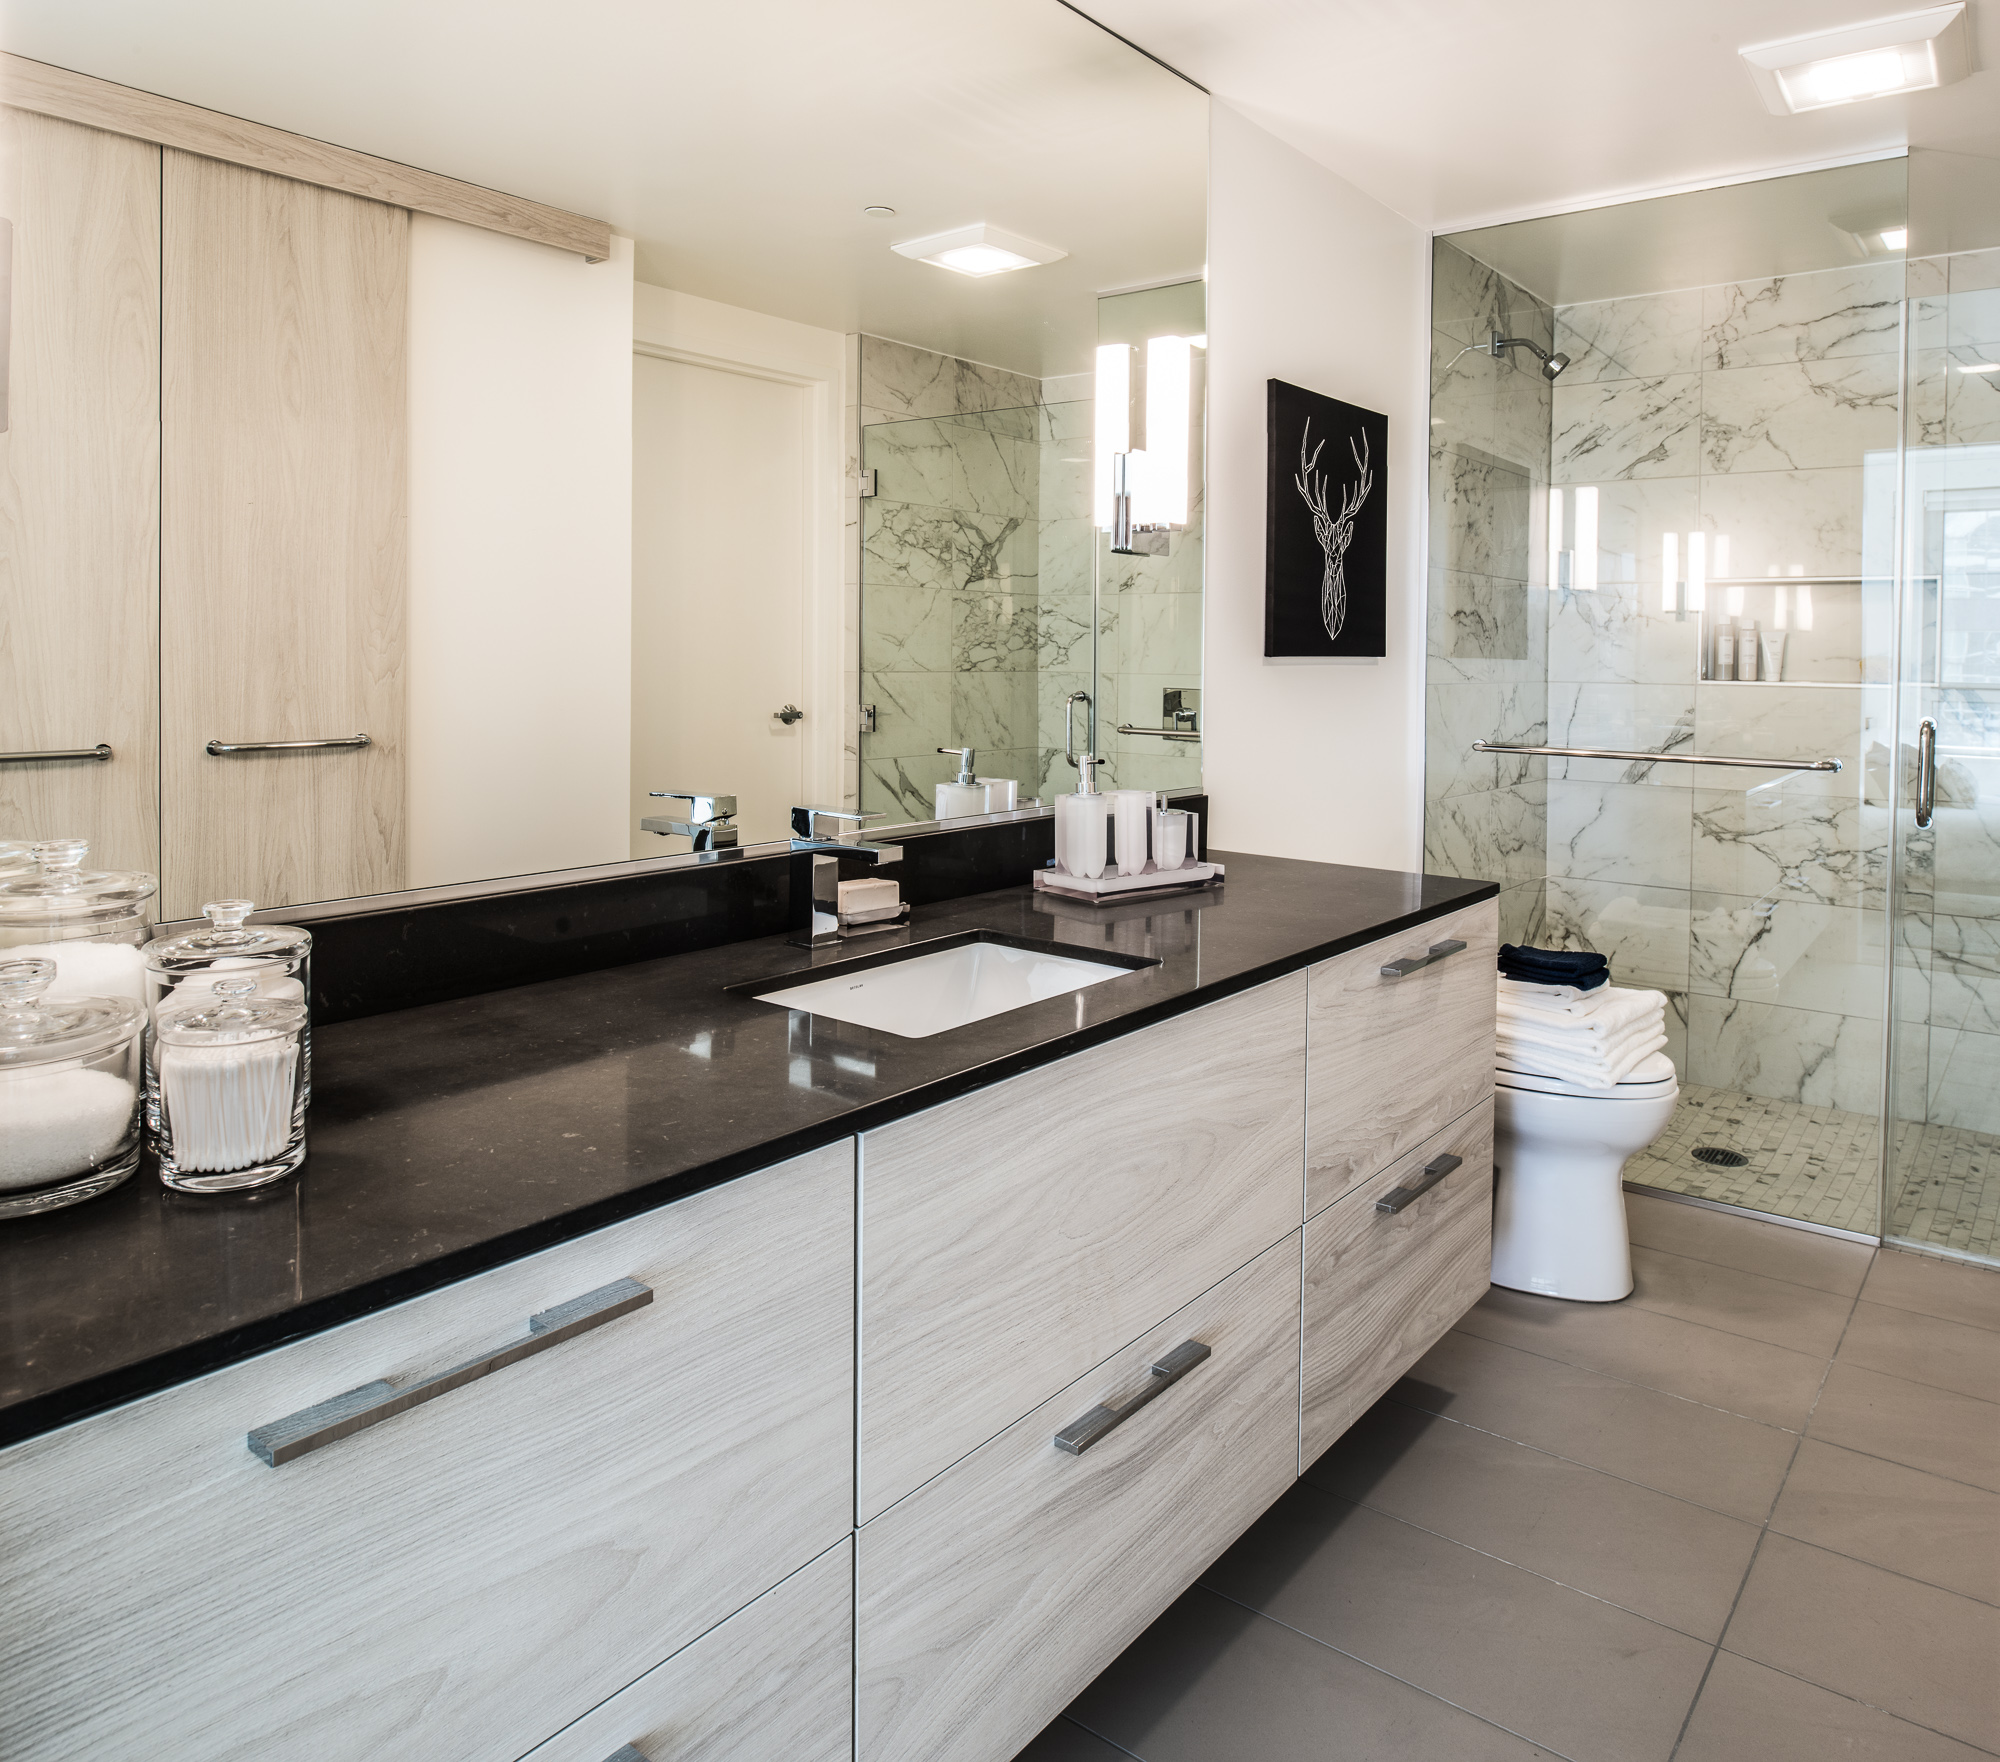 Trinity San Francisco bathroom with light wood vanity, black stone countertop, and white marble shower